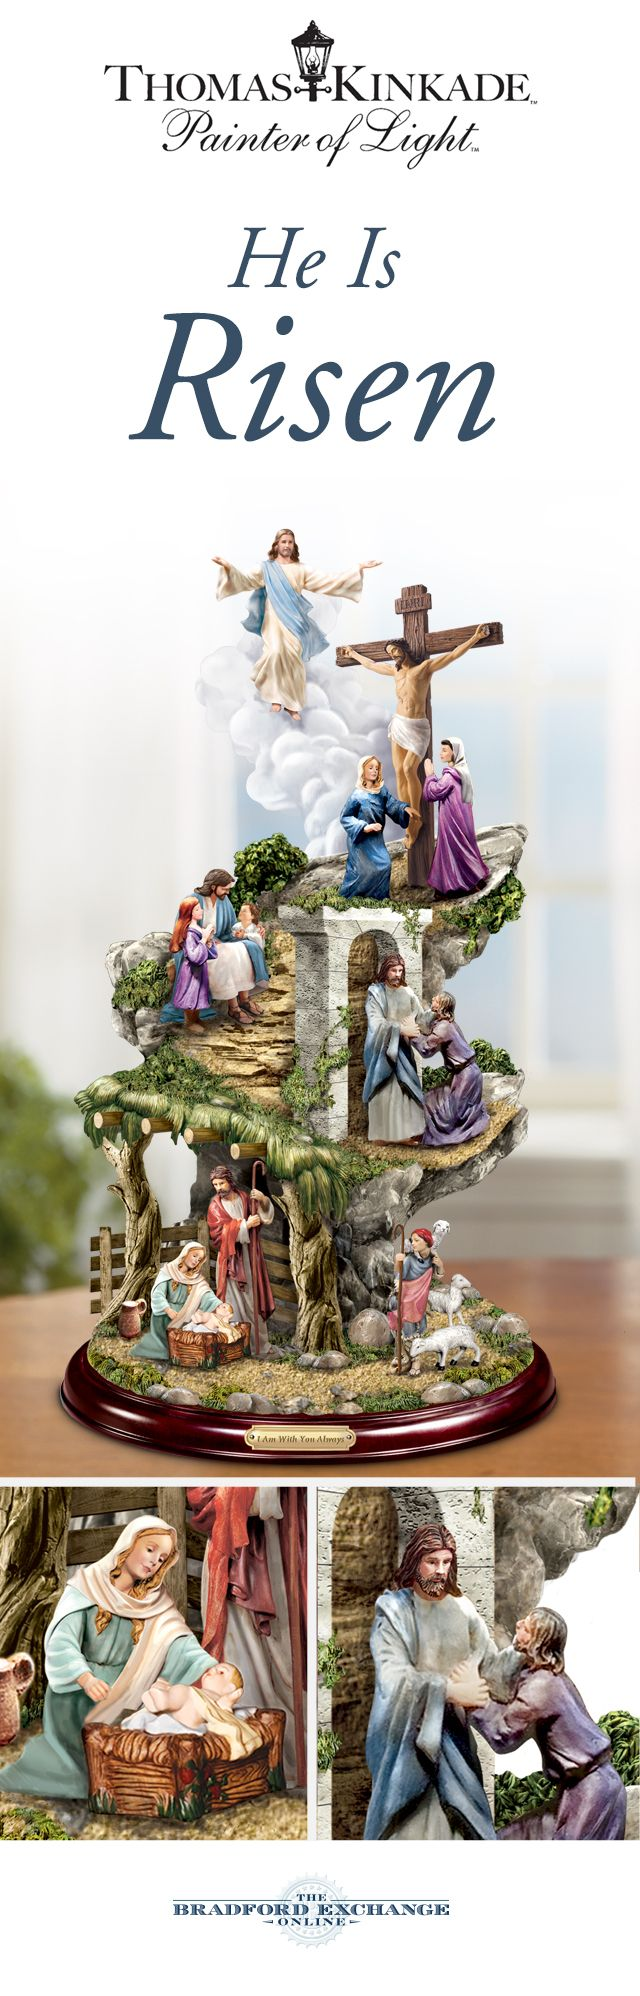 Celebrate the inspiring story of Jesus in this meaningful Thomas Kinkade sculpture. Five unique scenes capture pivotal moments from the life of Christ in colors inspired by the Renaissance.